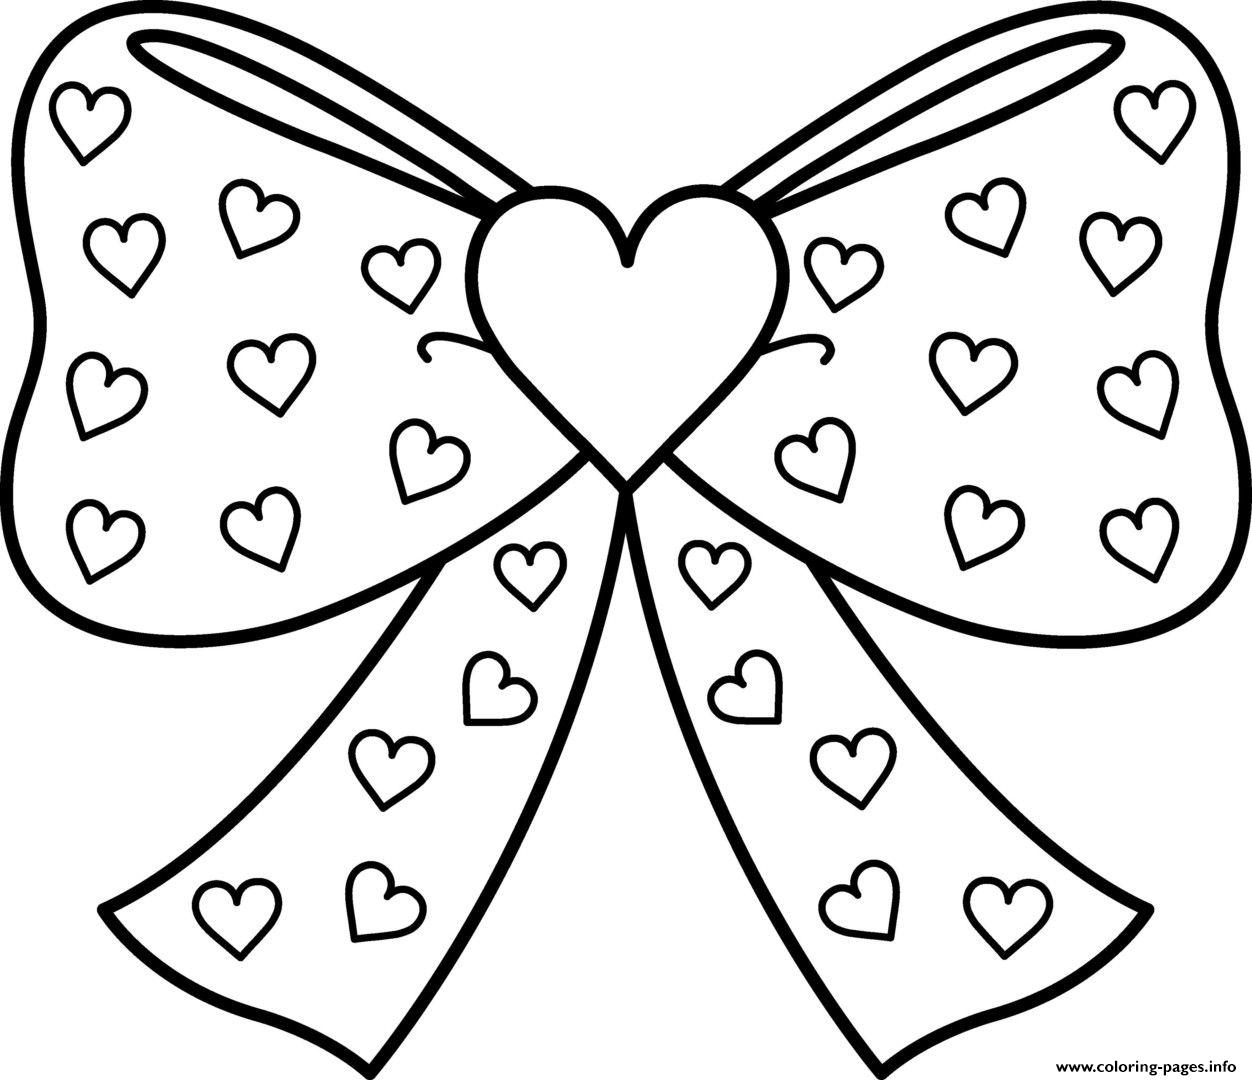 photo regarding Jojo Siwa Coloring Pages Printable named Good quality Bows Jojo Siwa Coloring Internet pages Printable